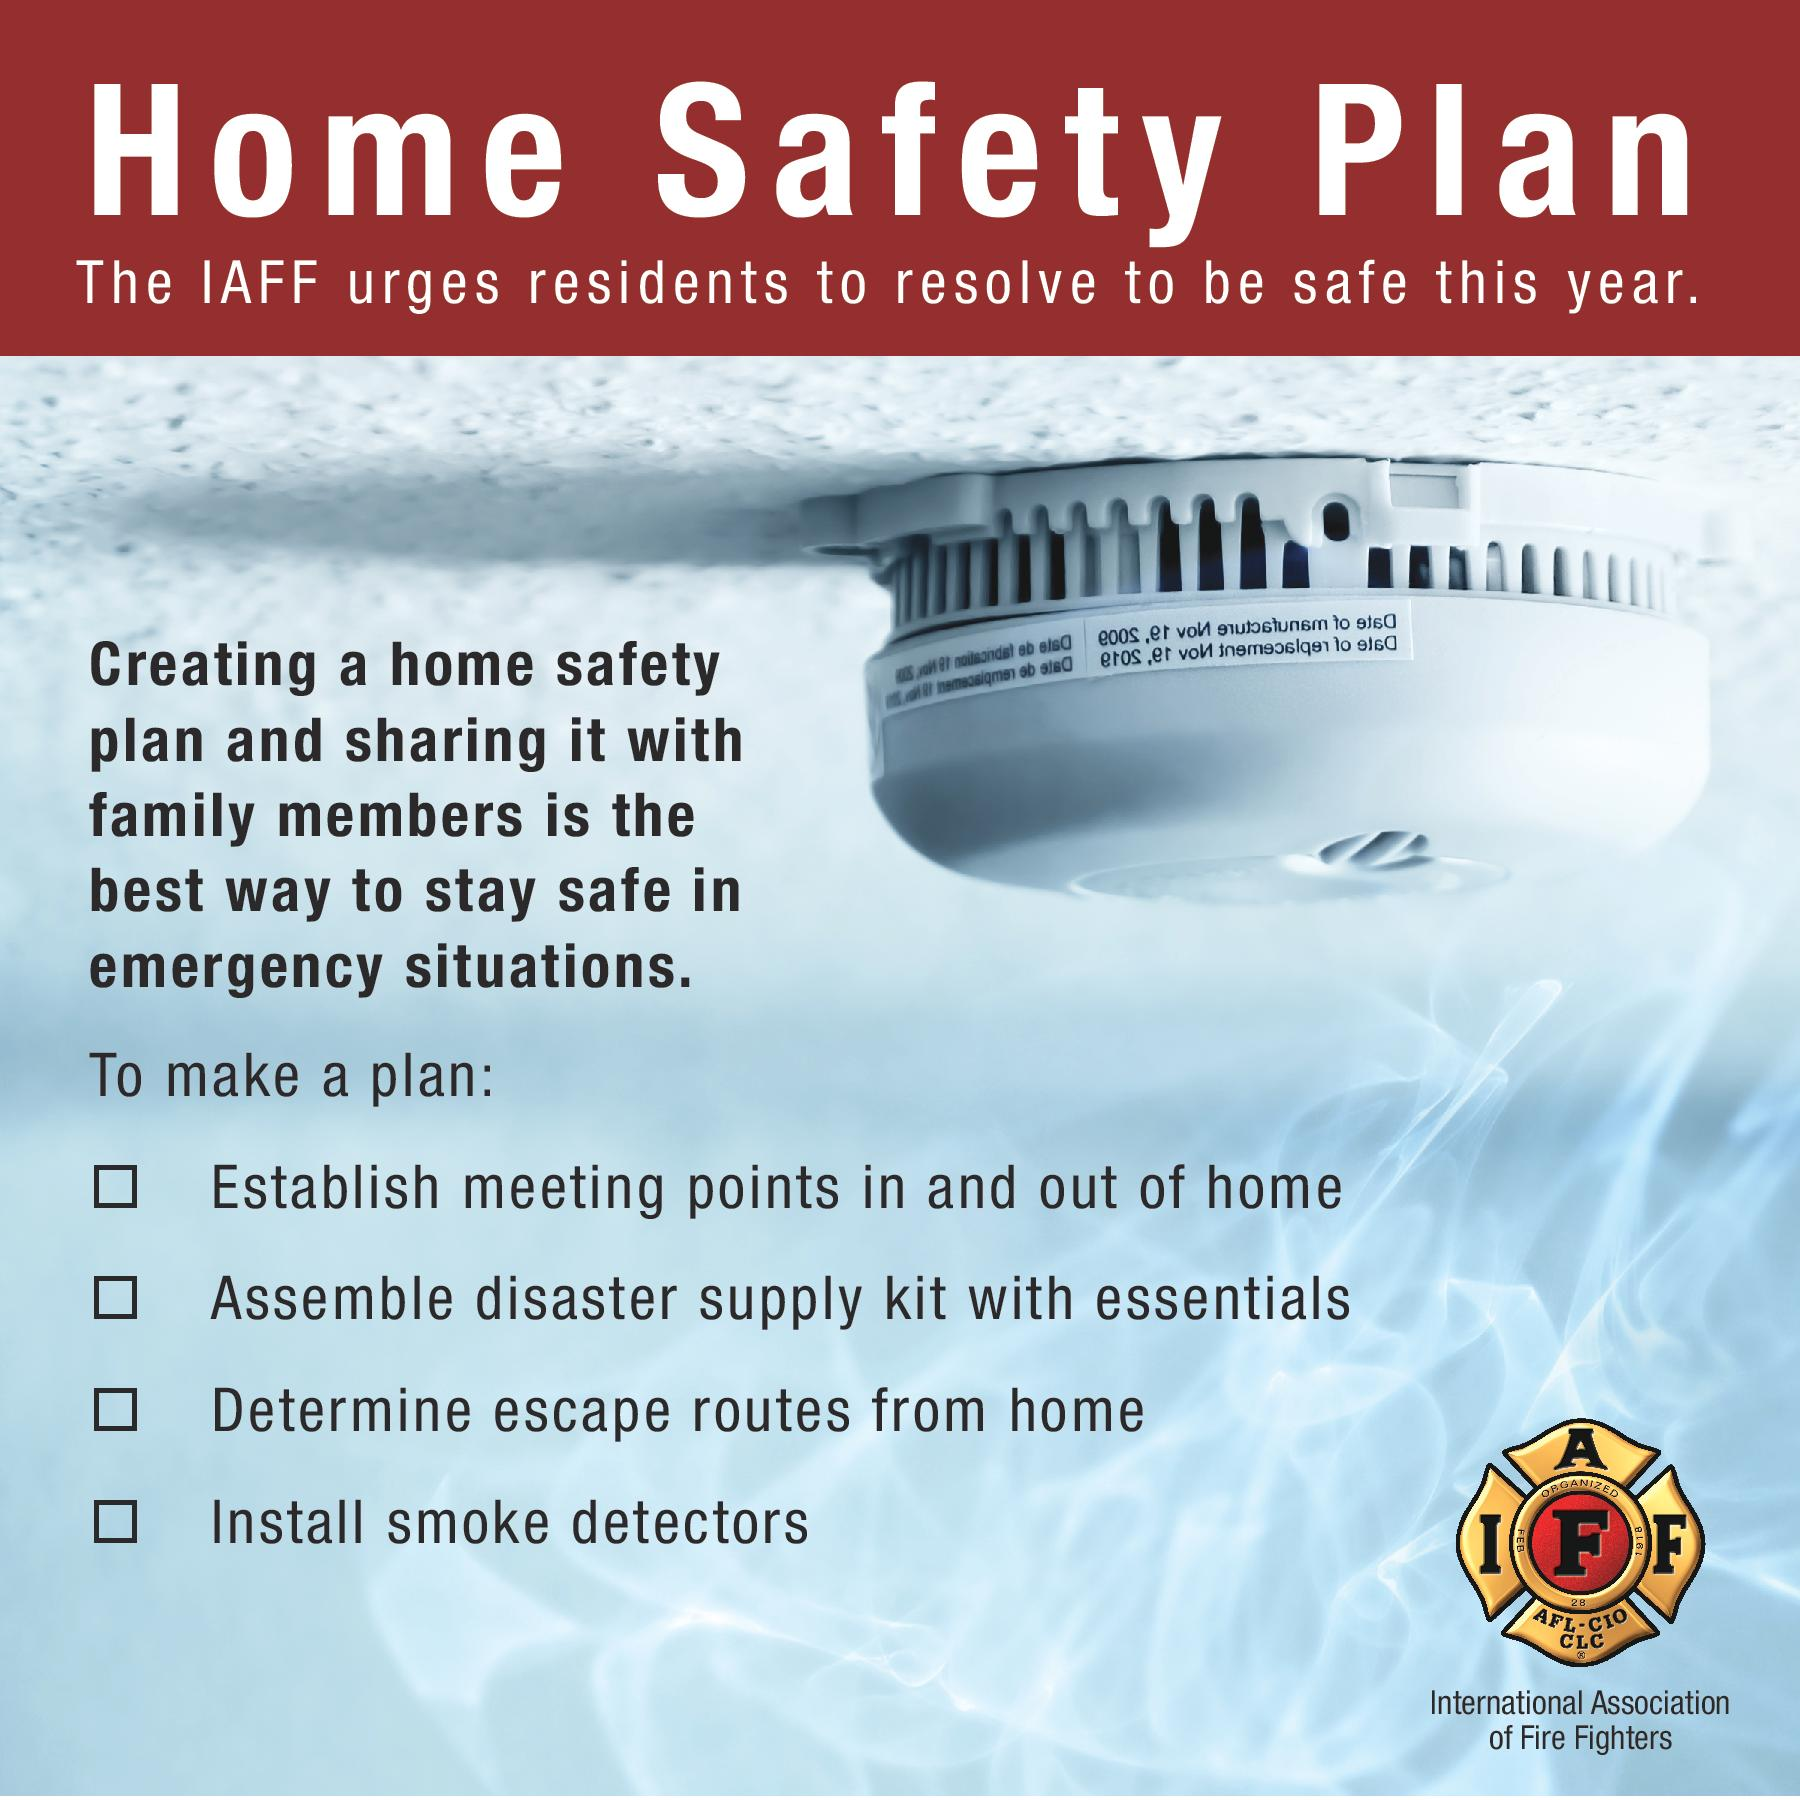 Fire safety plan for your home house design ideas Home fire safety plan